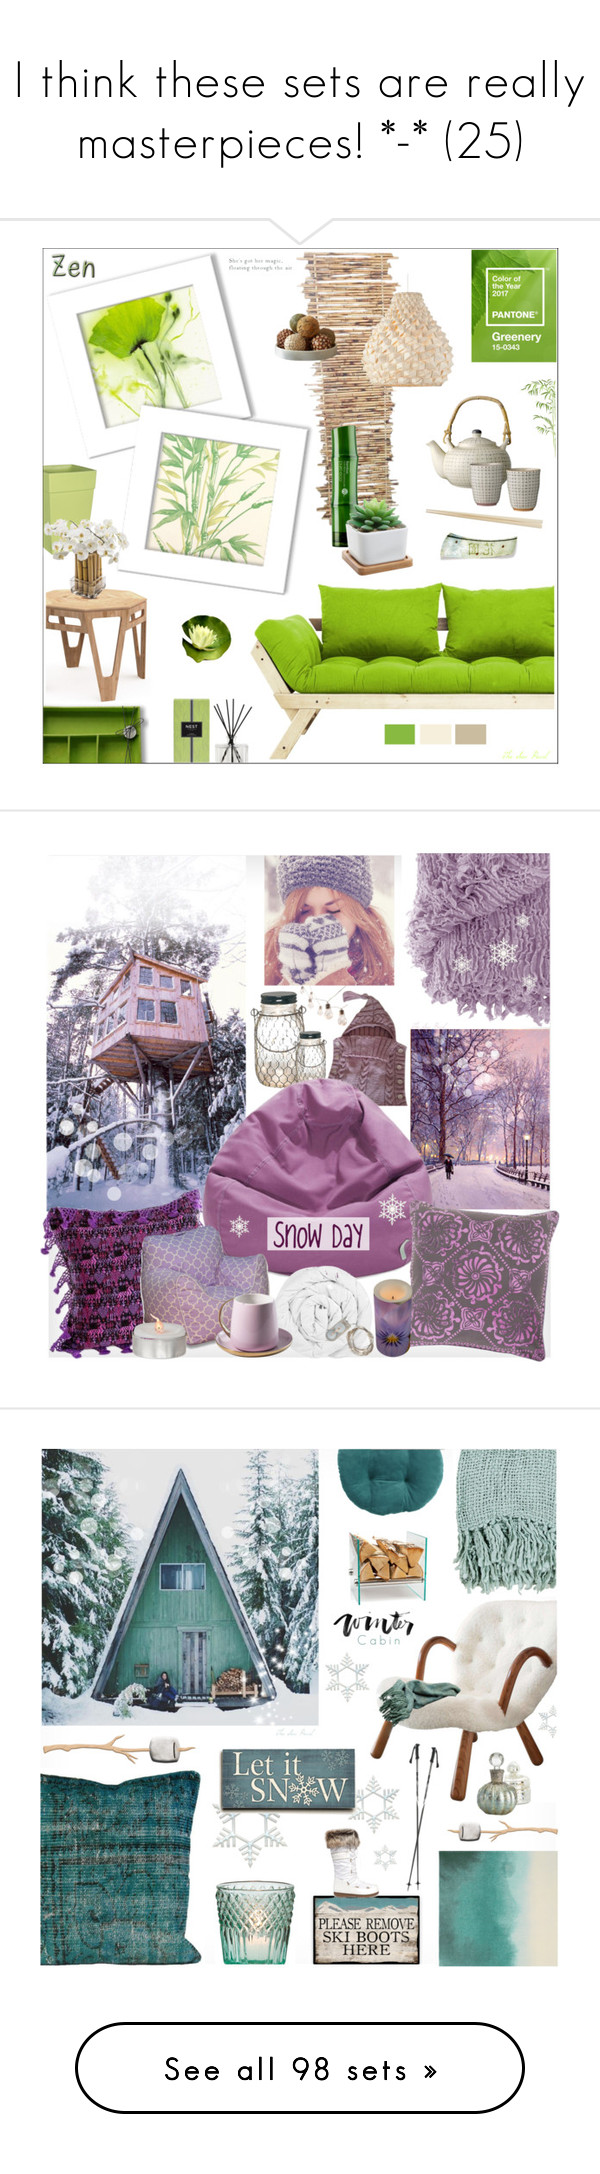 """""""I think these sets are really masterpieces! *-* (25)"""" by tempestaartica ❤ liked on Polyvore featuring interior, interiors, interior design, home, home decor, interior decorating, Cole & Son, Tony Moly, Nest Fragrances and Sia"""